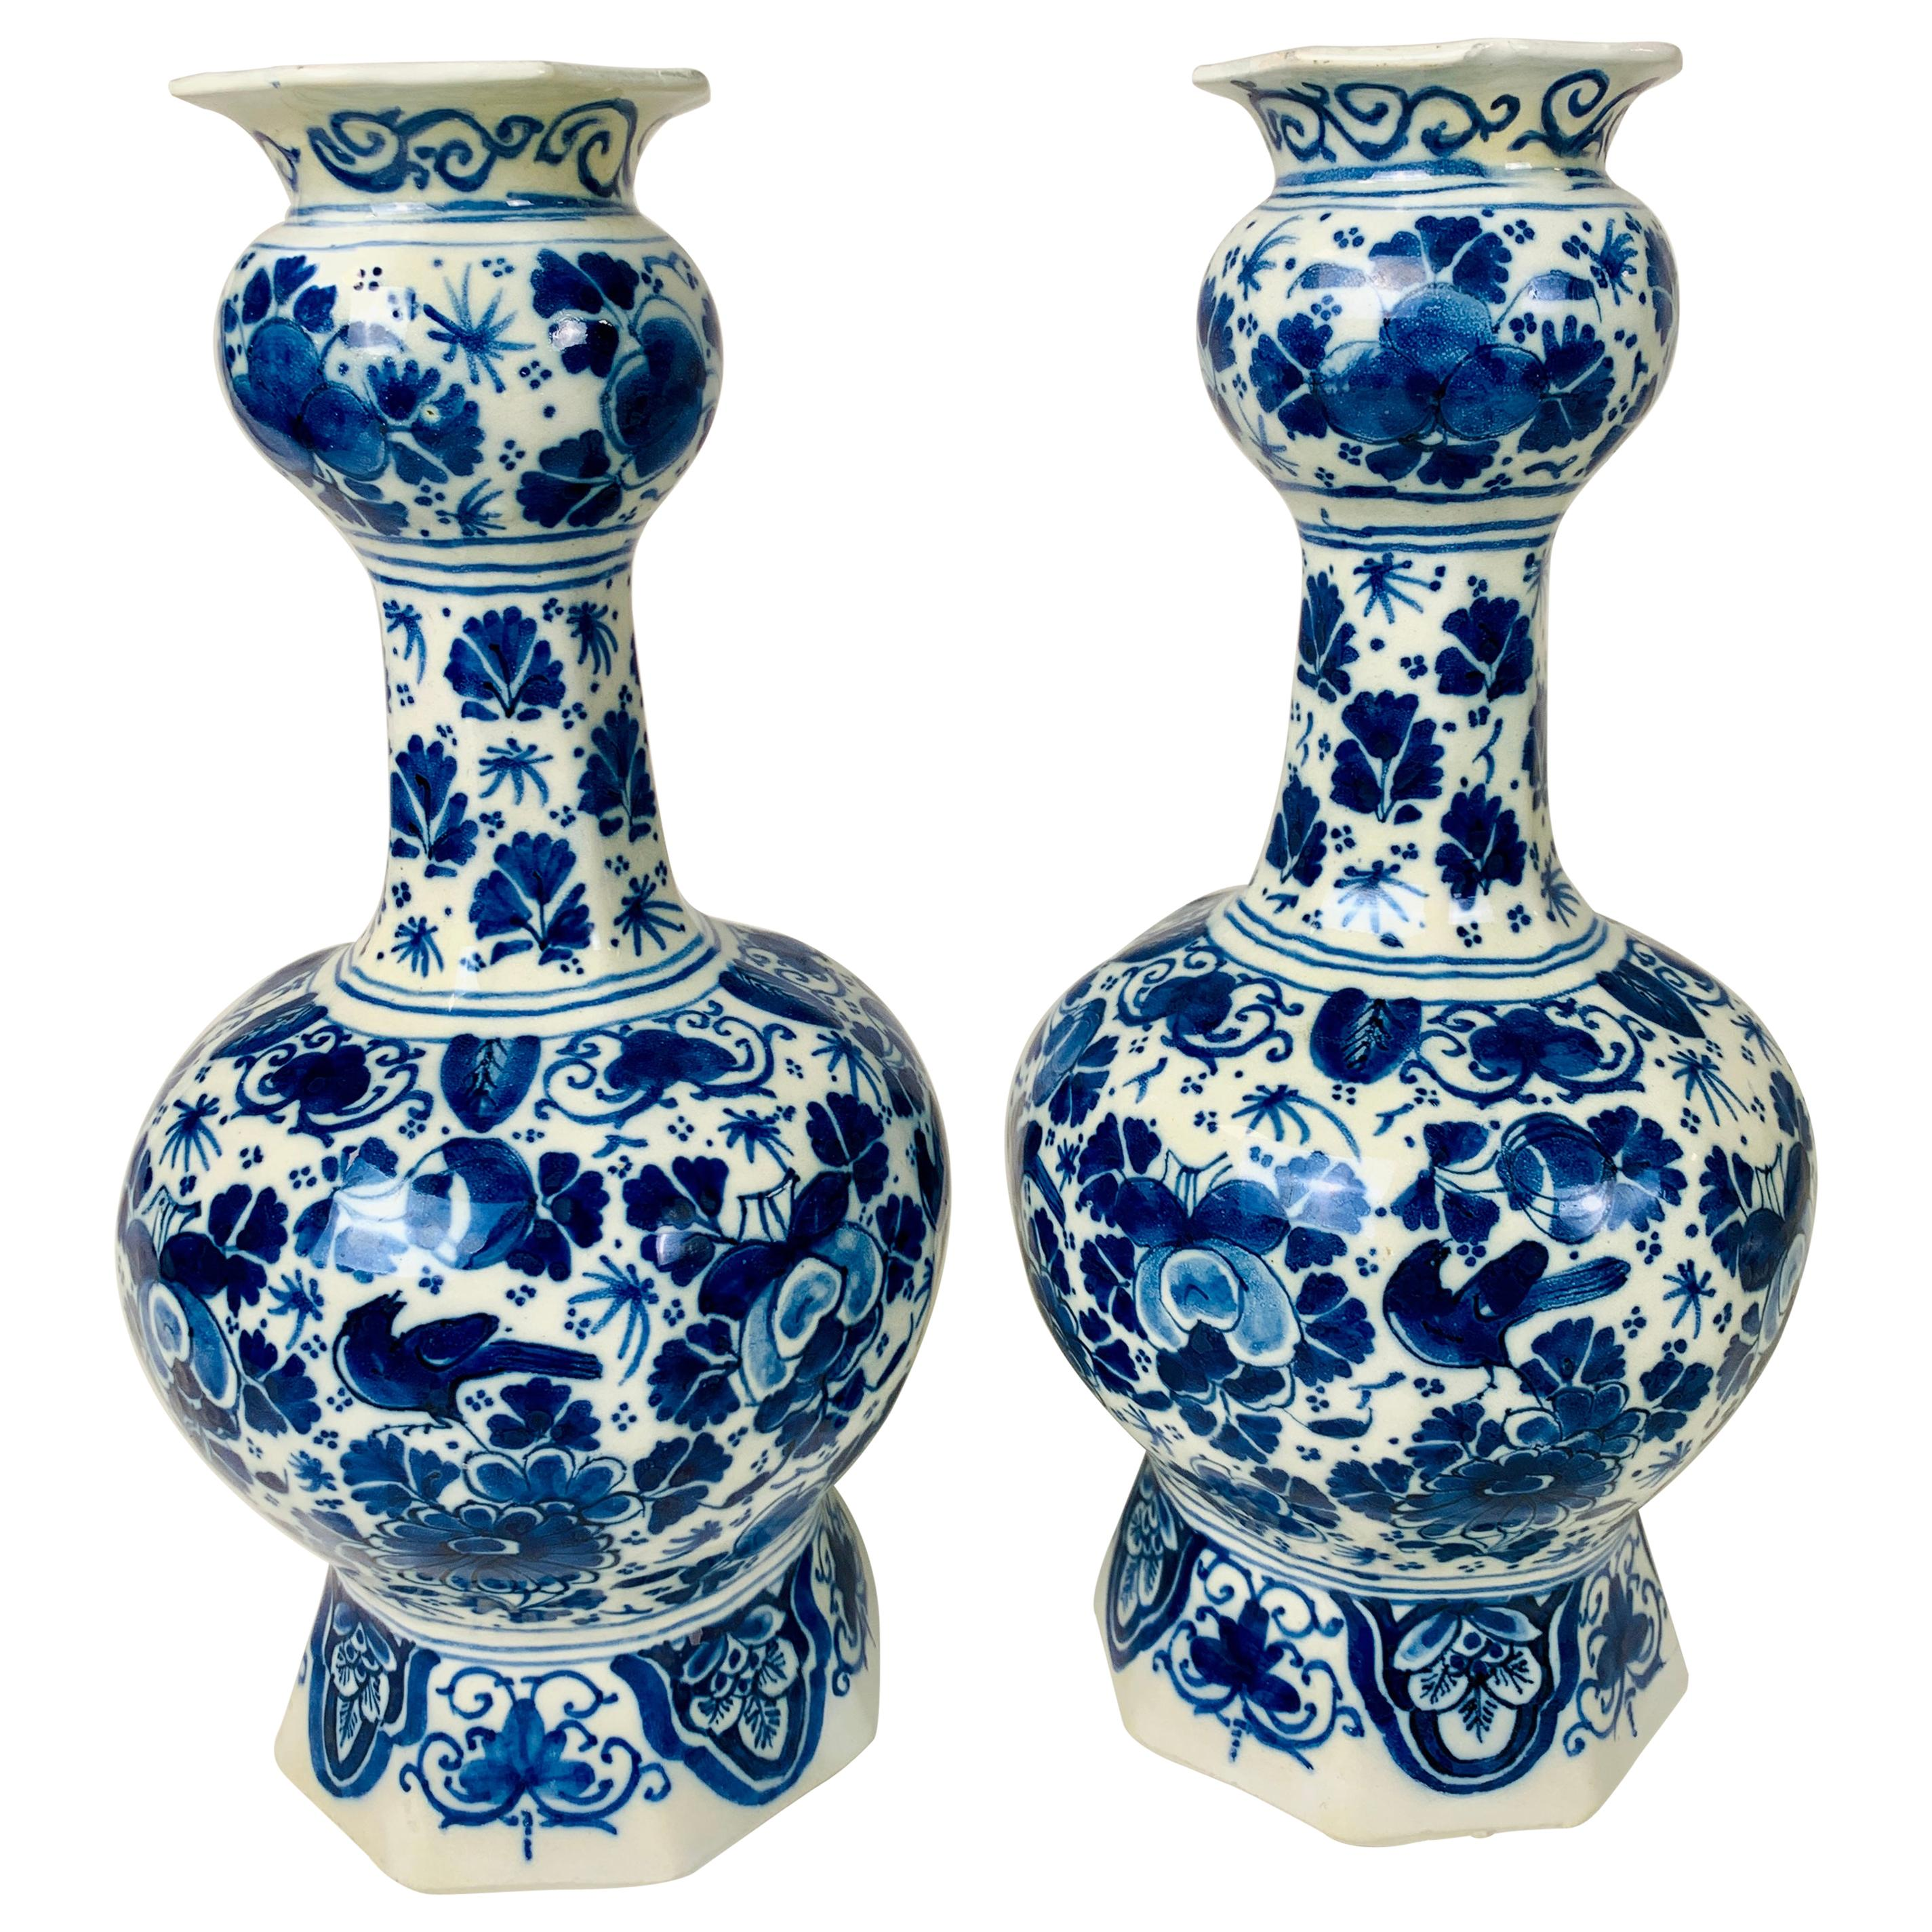 Pair of Small Blue and White Dutch Delft Vases Made, 18th Century circa 1760